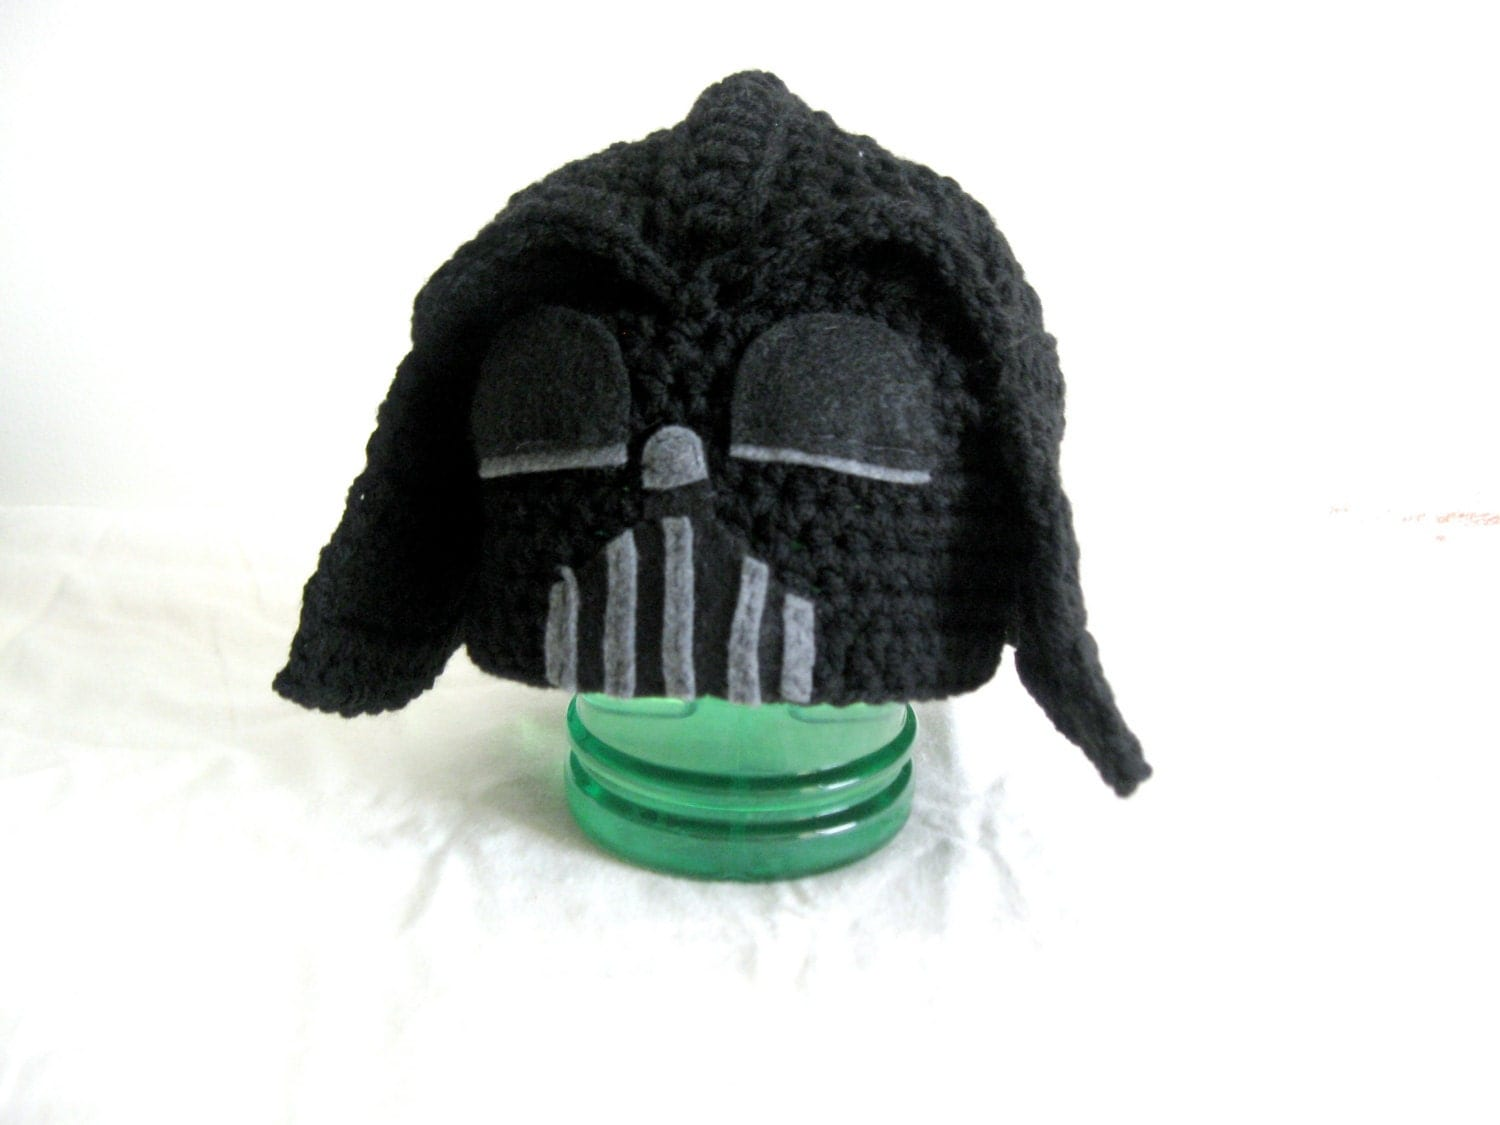 Crochet pattern darth vader hat dancox for crochet star wars darth vader hat star wars darth vader bankloansurffo Choice Image